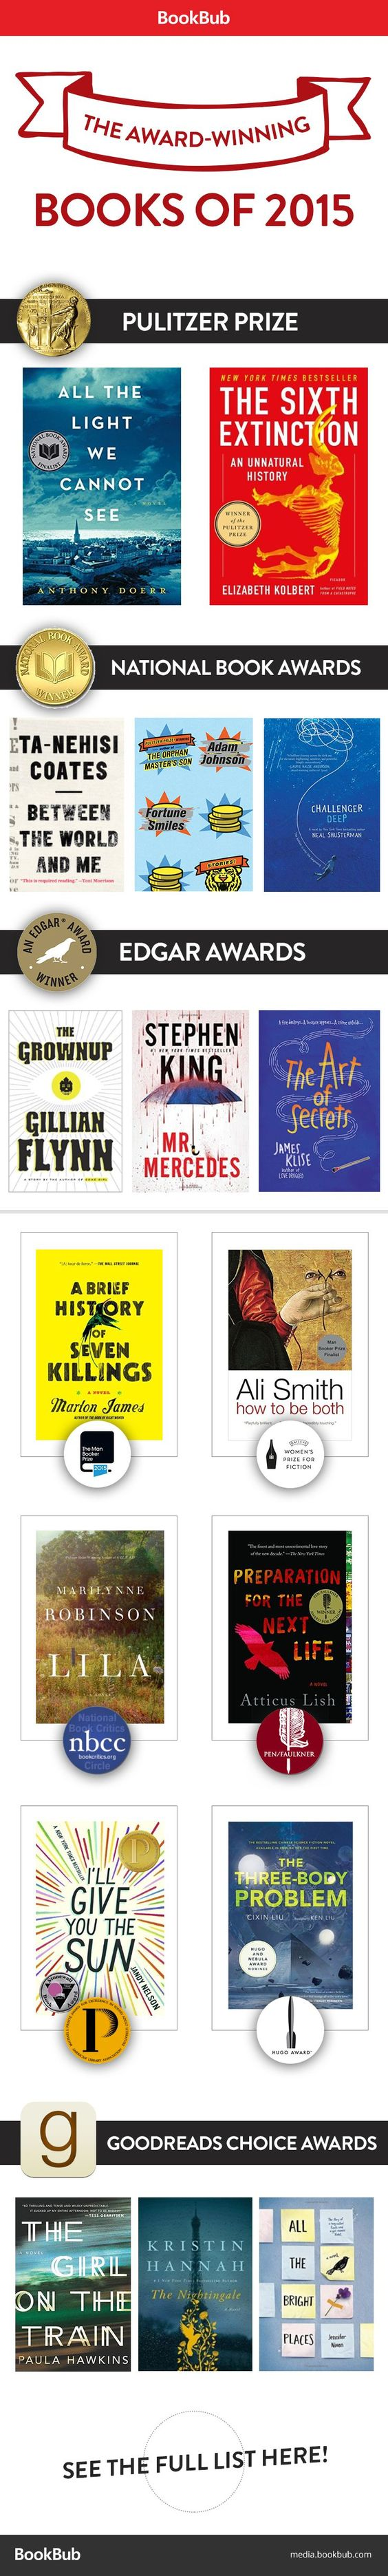 21 Fantastic Books That Won Awards in 2015 | Cheer, The o ...